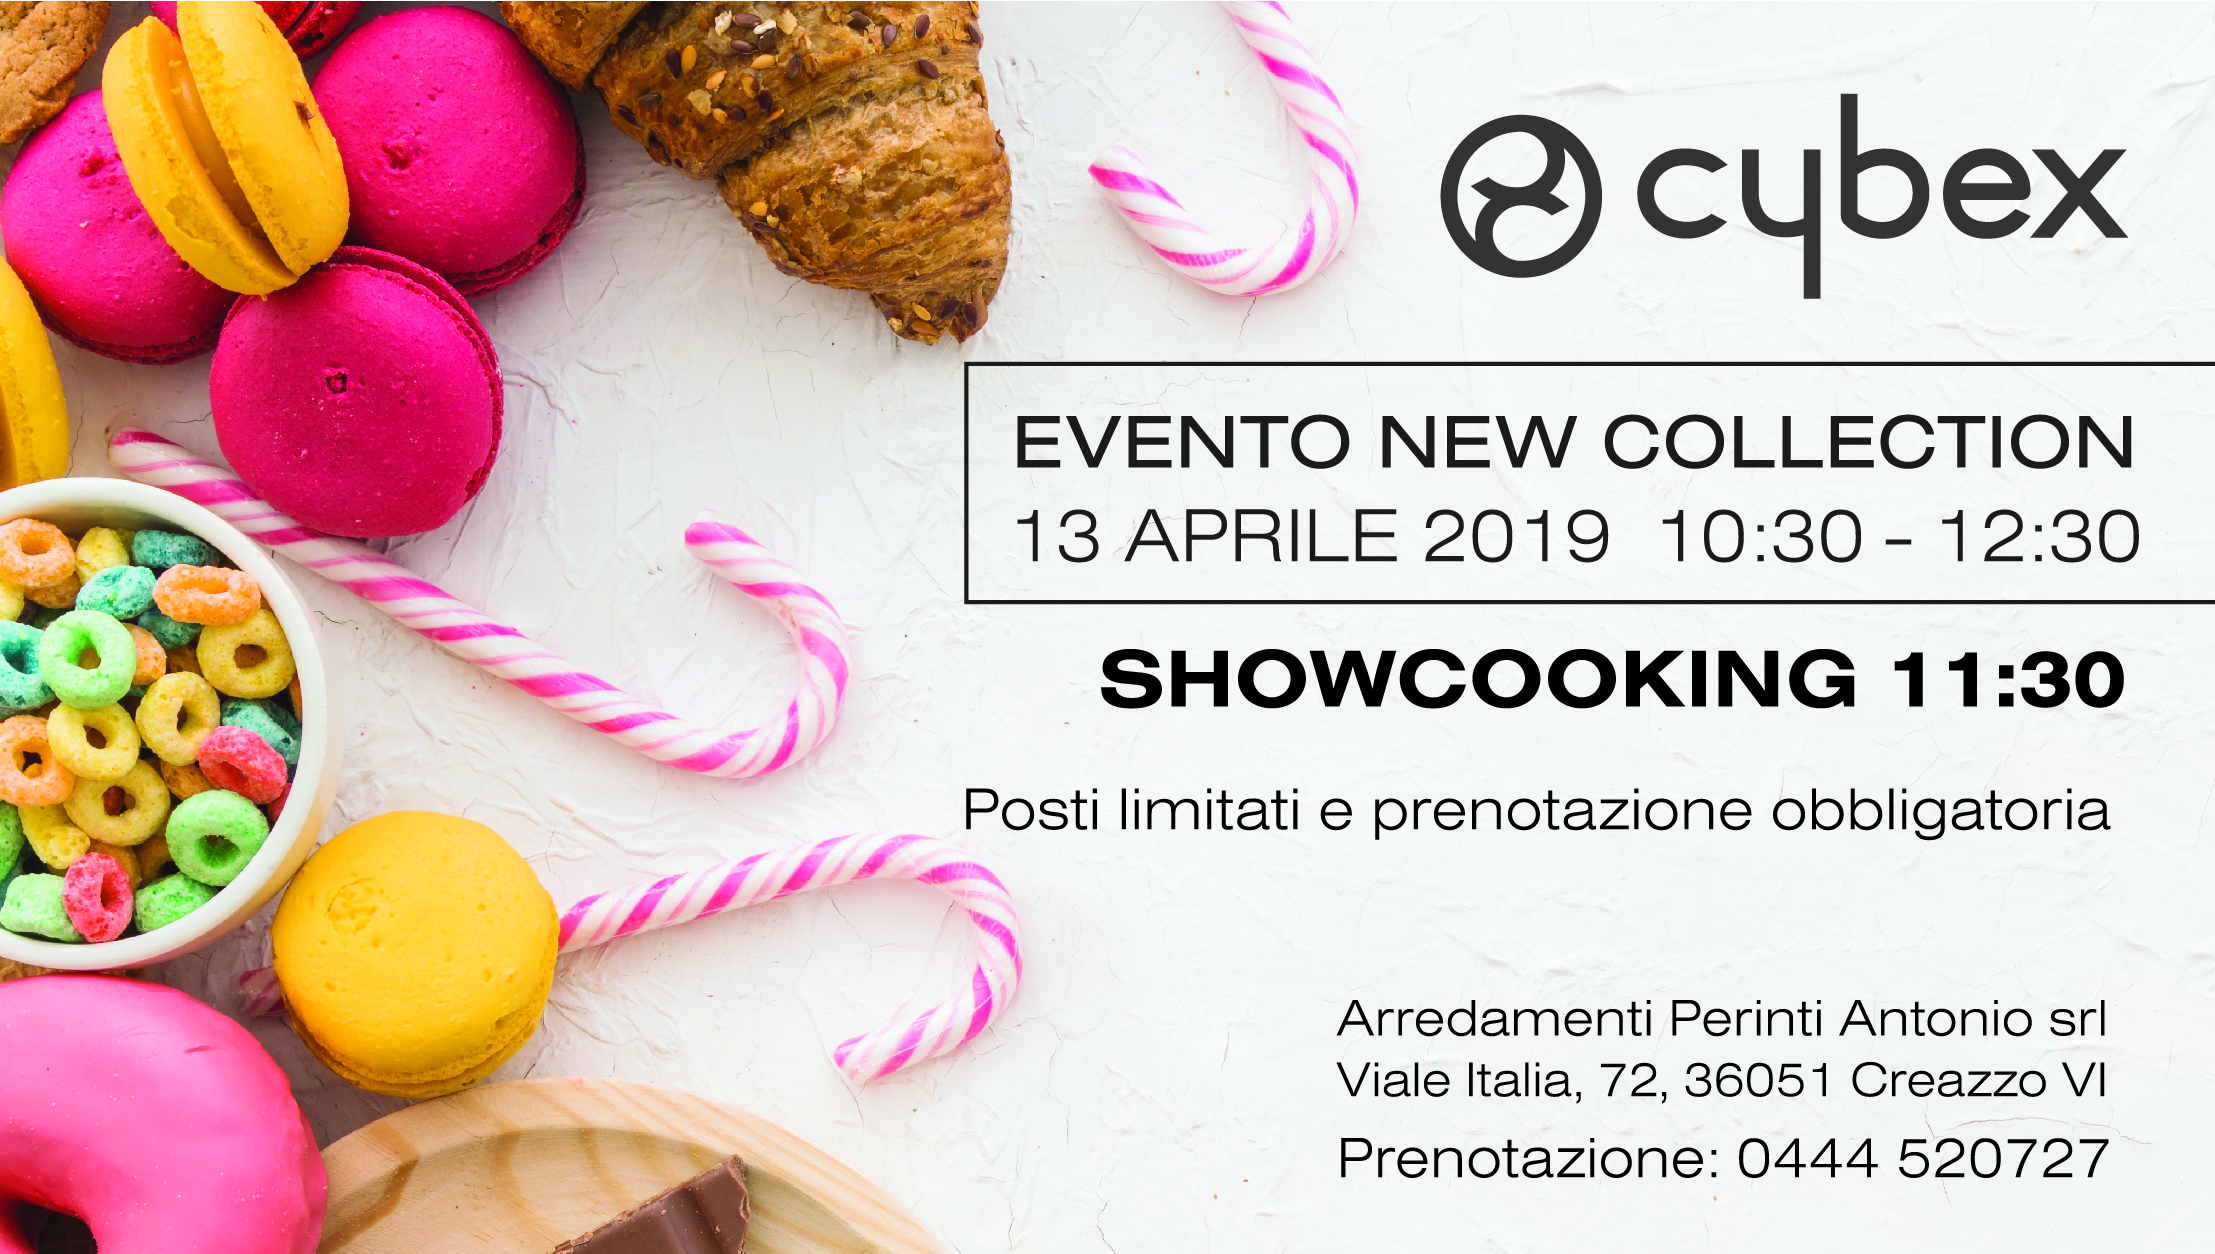 SHOWCOOKING E CYBEX NEW COLLECTION